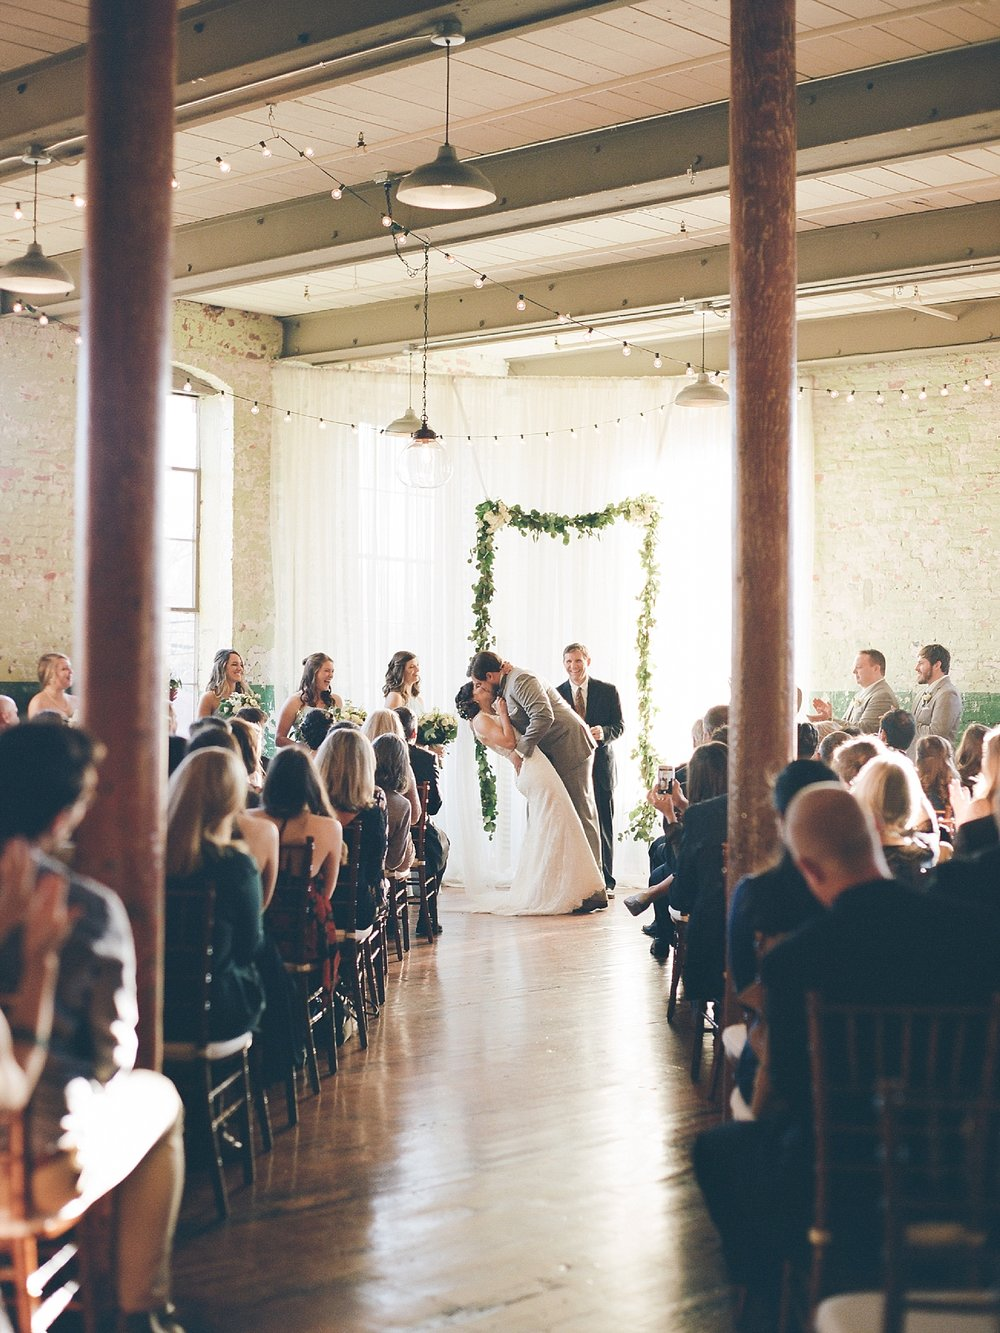 The Engine Room Atlanta Wedding Photographer Christina Pugh 31.jpg